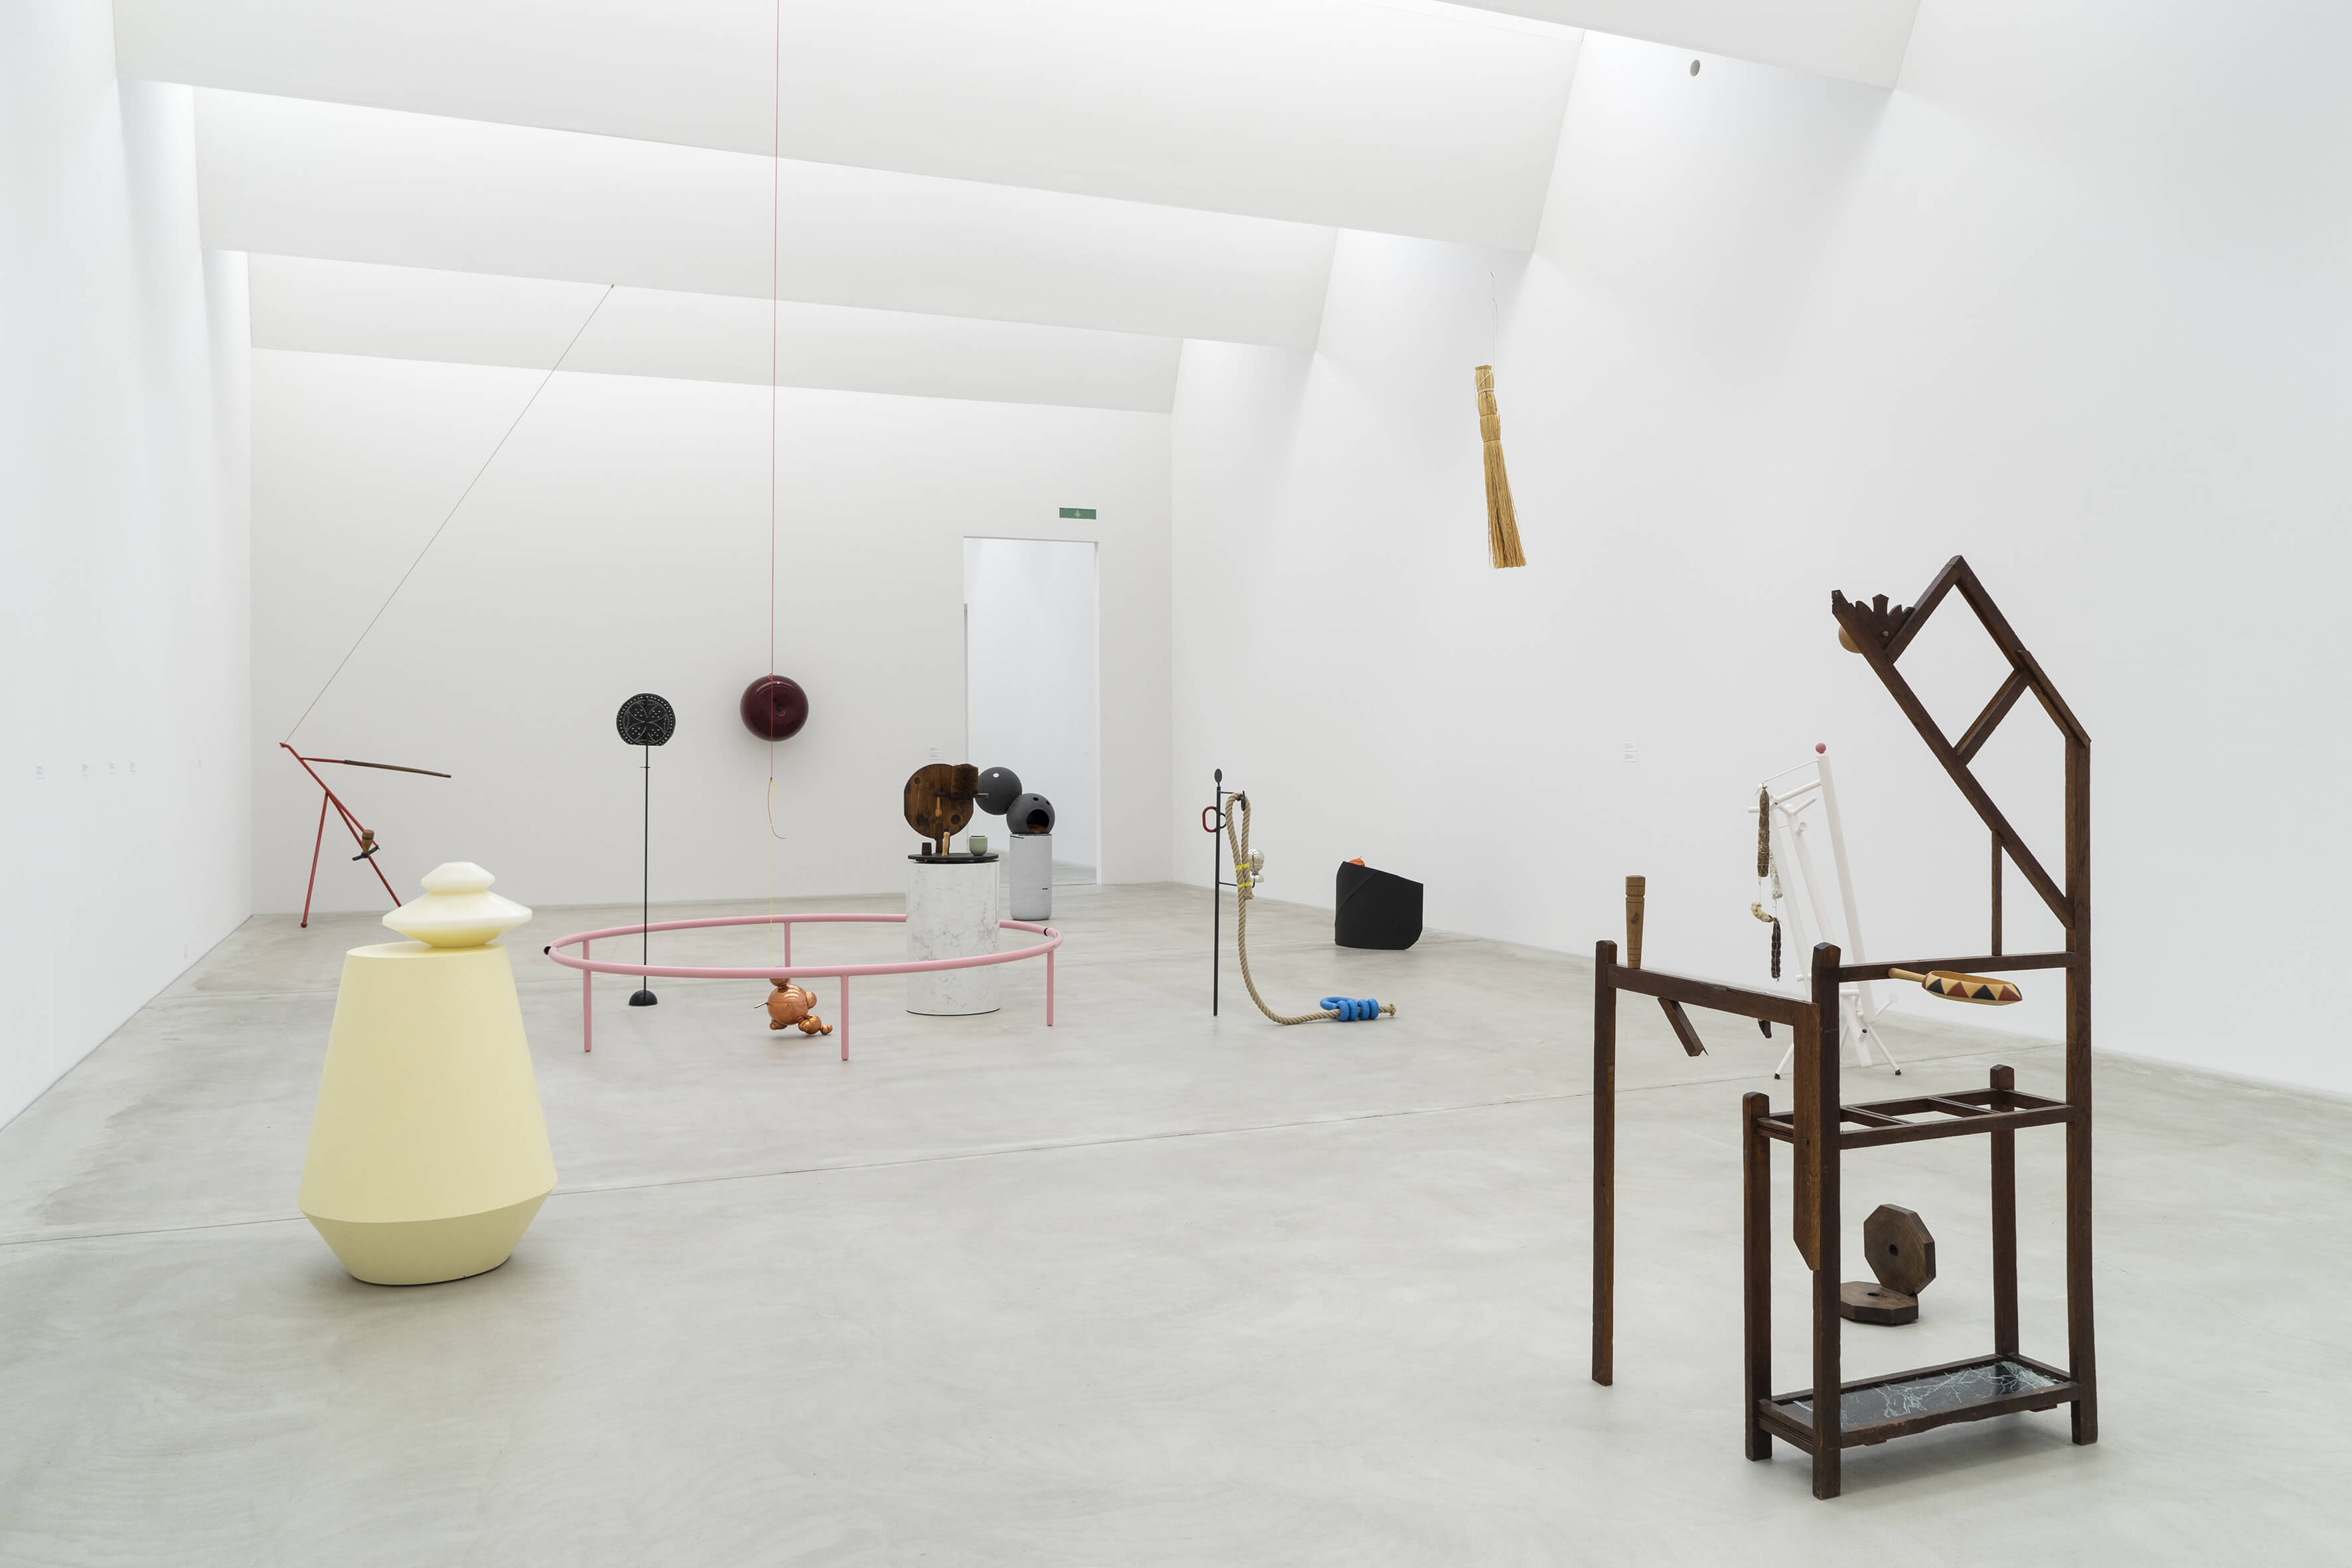 Installation view: Kunststoff –Gallery of Material Culture, 2019 |  | ProjecteSD